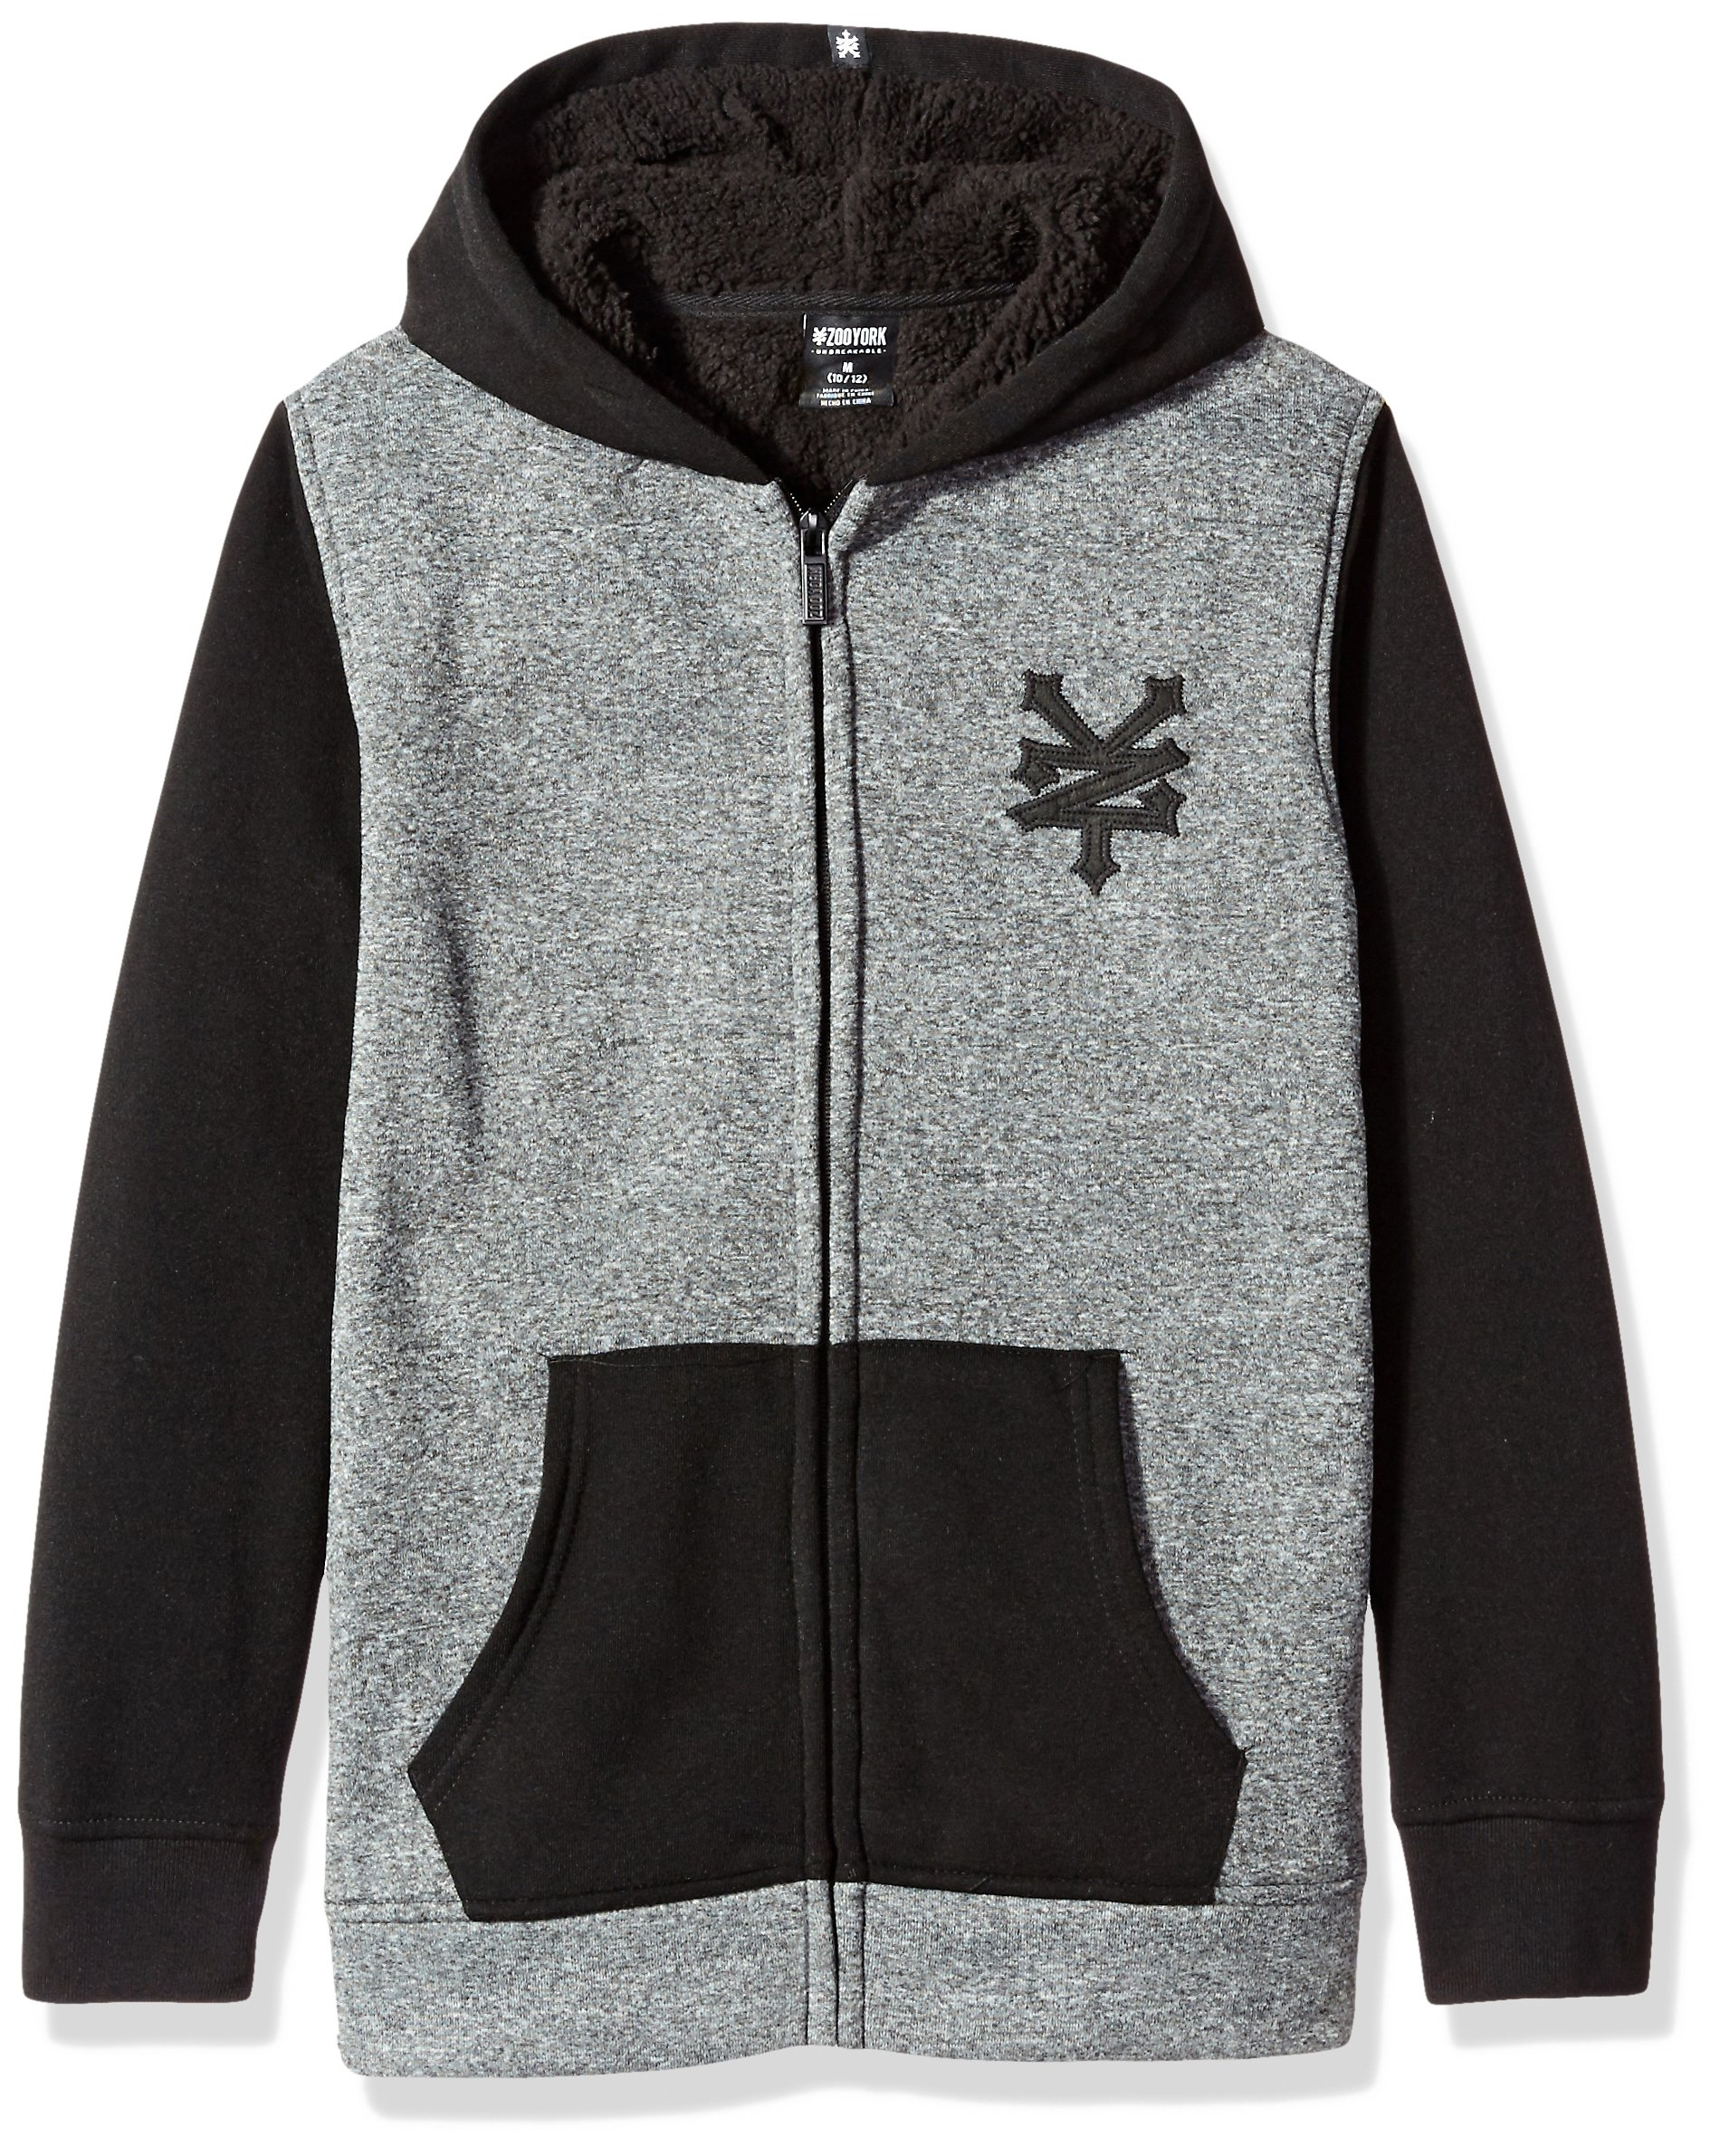 Zoo York Big Boys' Hoodie with Sherpa Lining, Cracker Black Heather, Large (14/16)